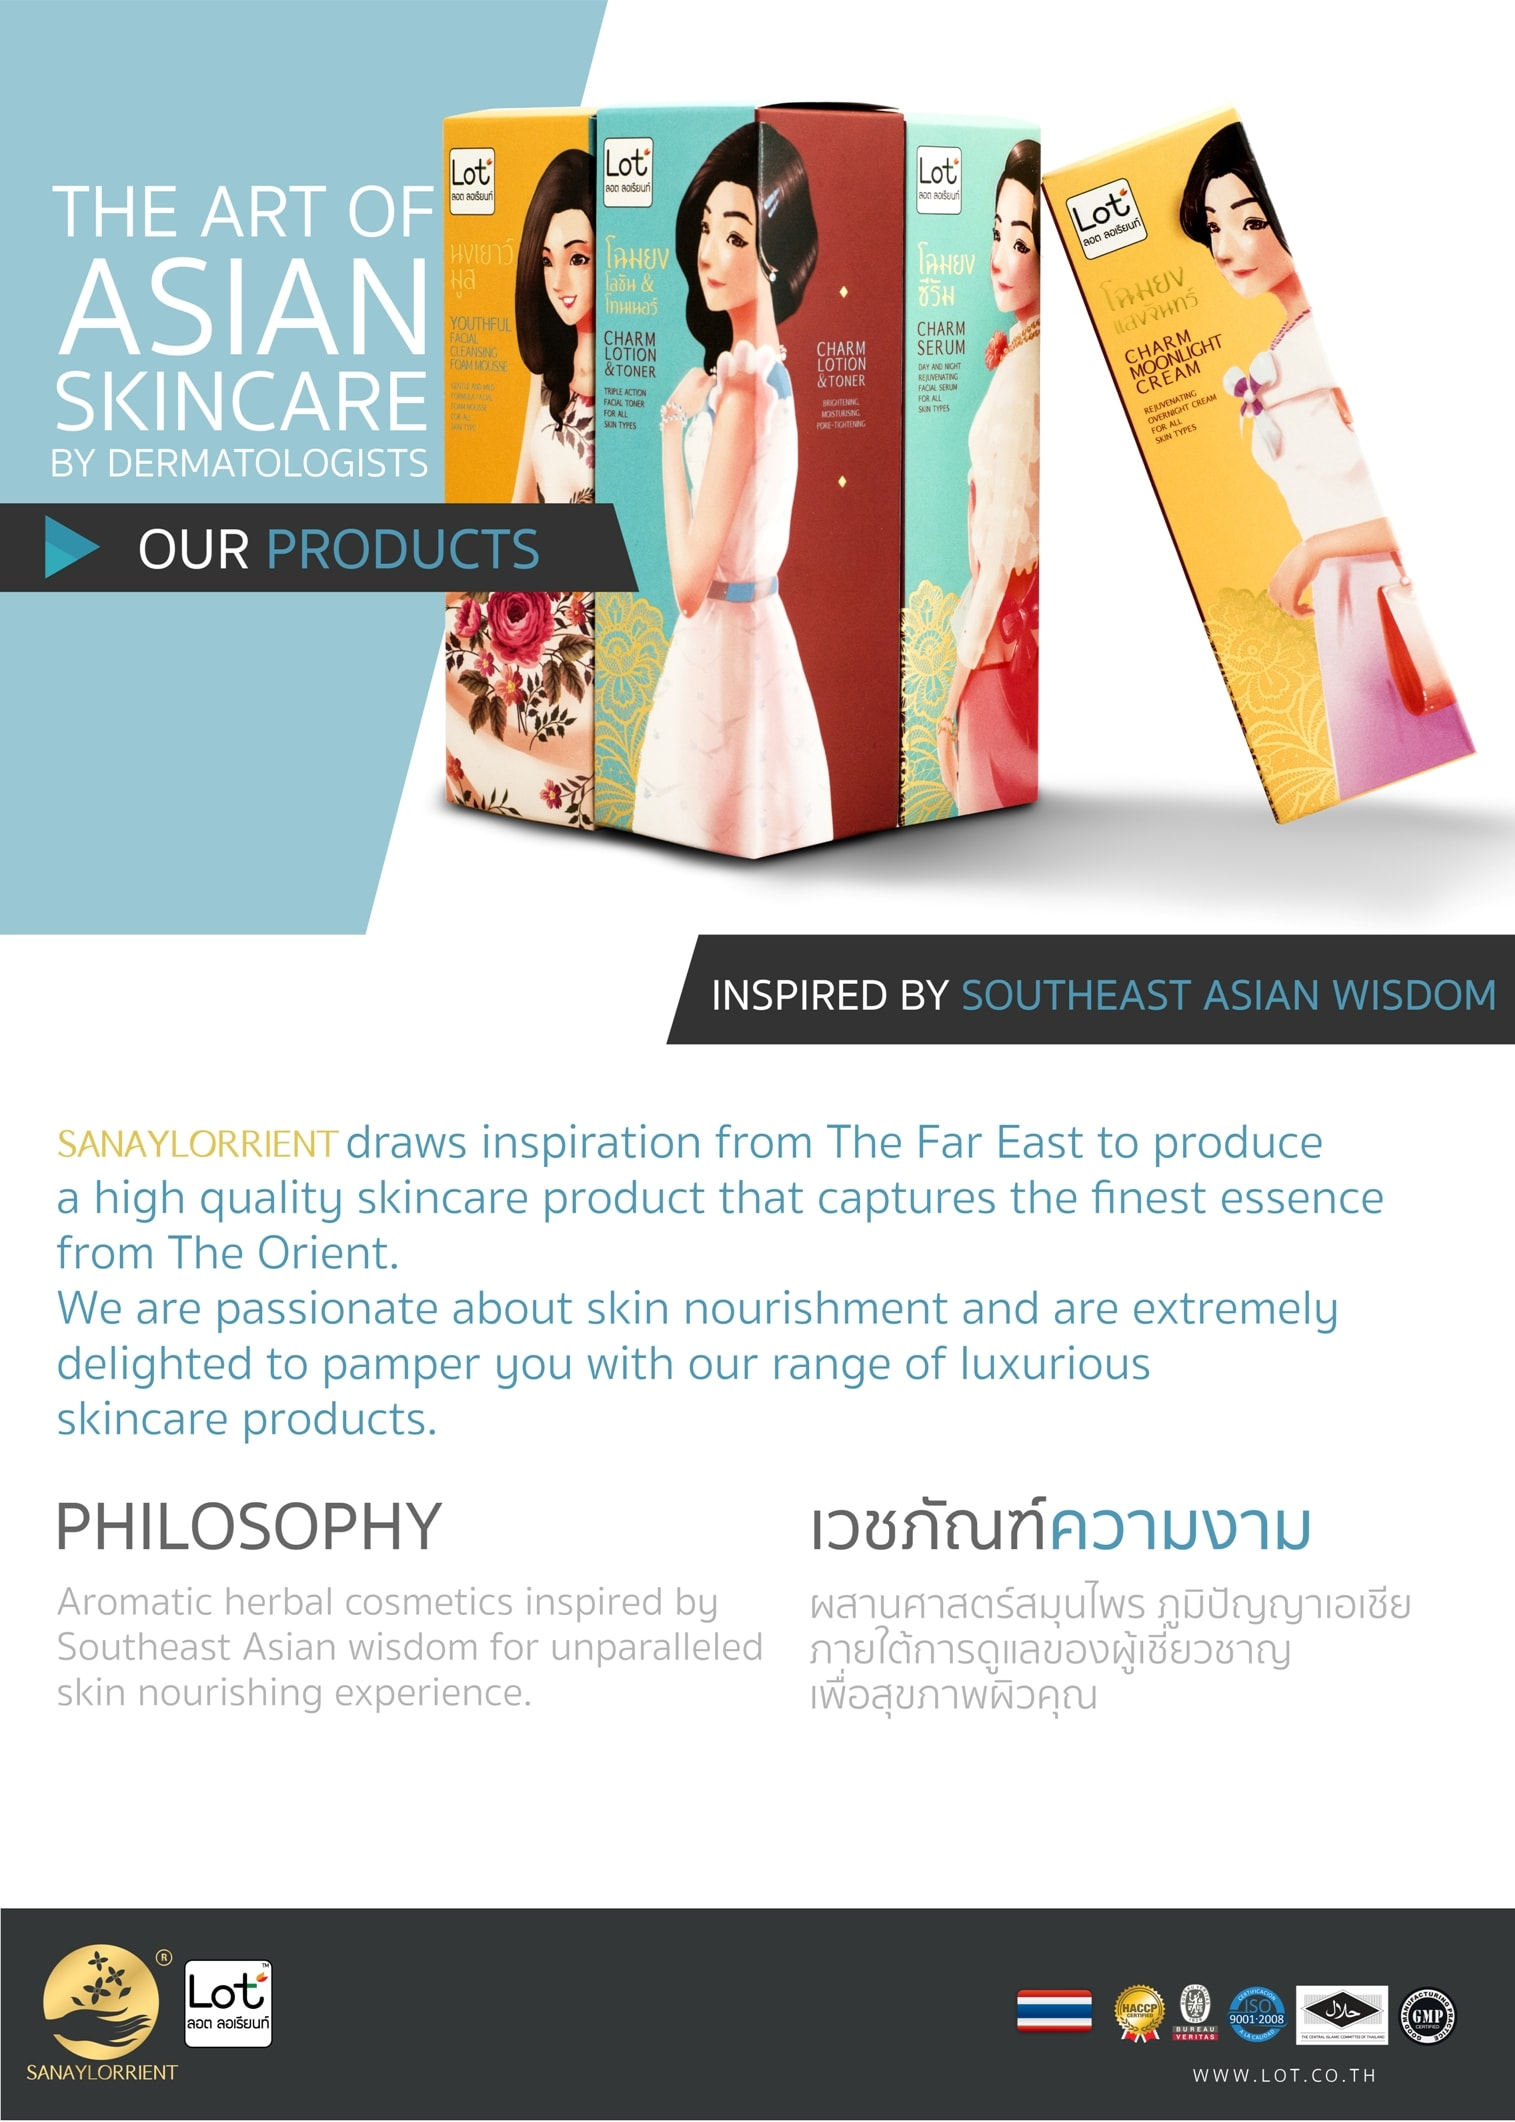 SANAYLORRIENT products